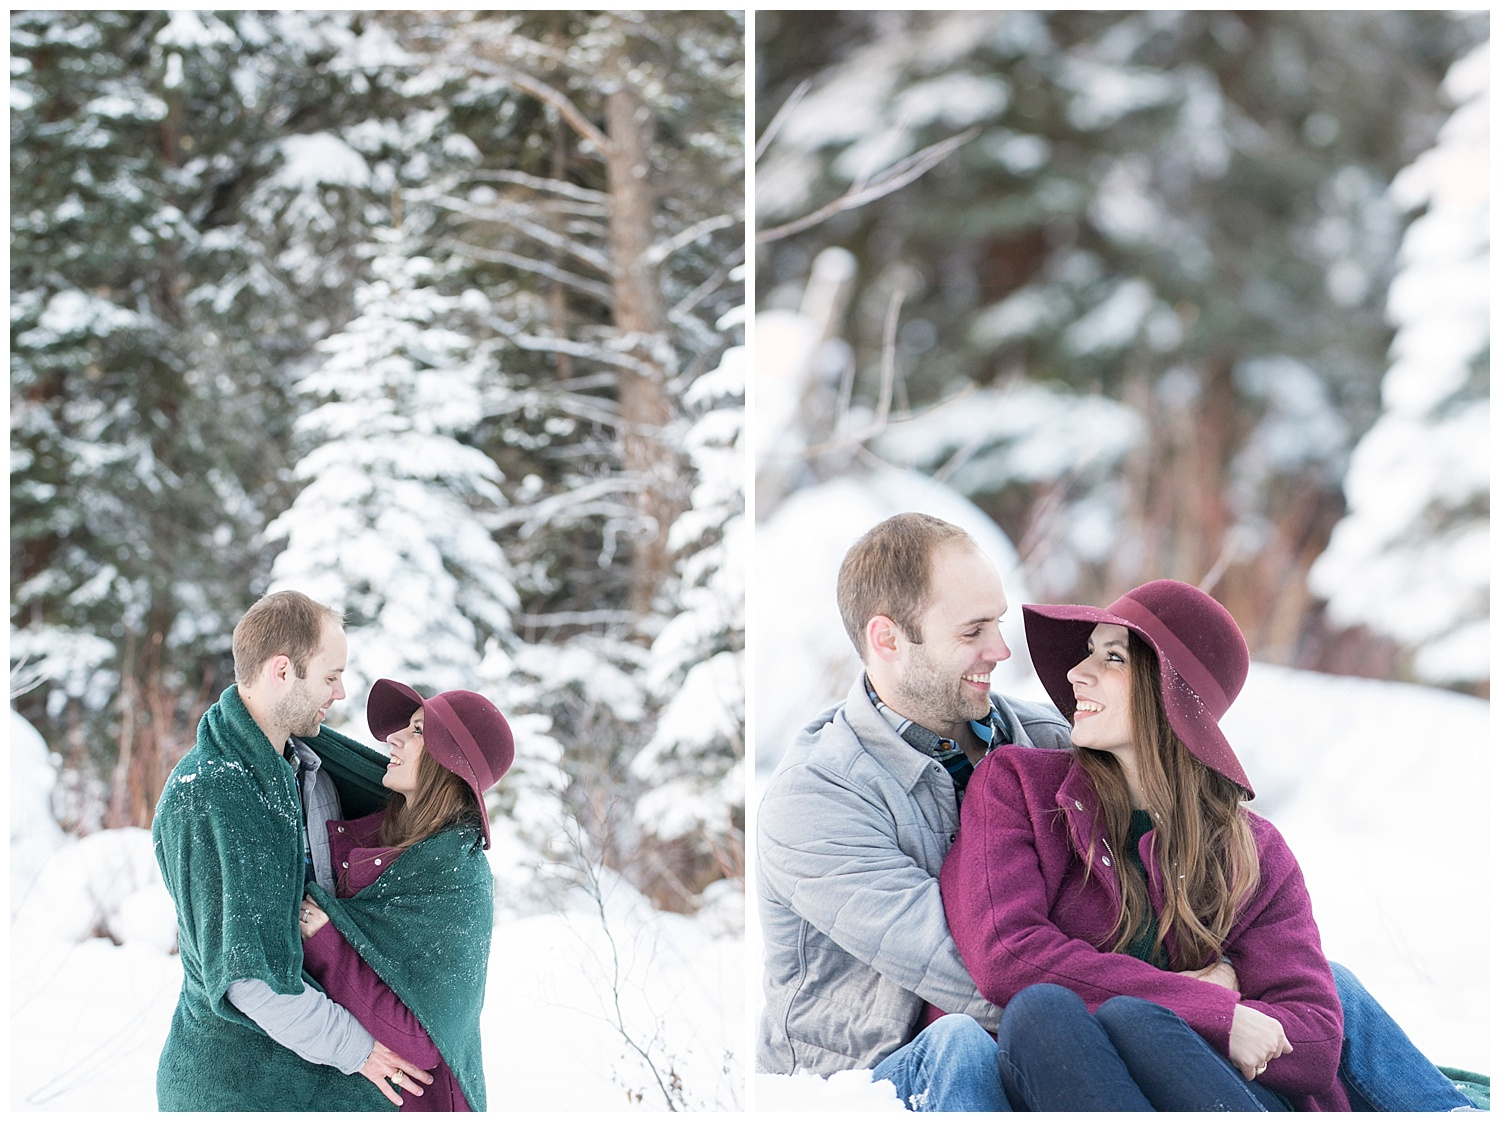 Breckenridge_Colorado_Engagement_Photographer_Ski_Resort_Mountain_Town_Photography_Engagement_Photos_010.jpg